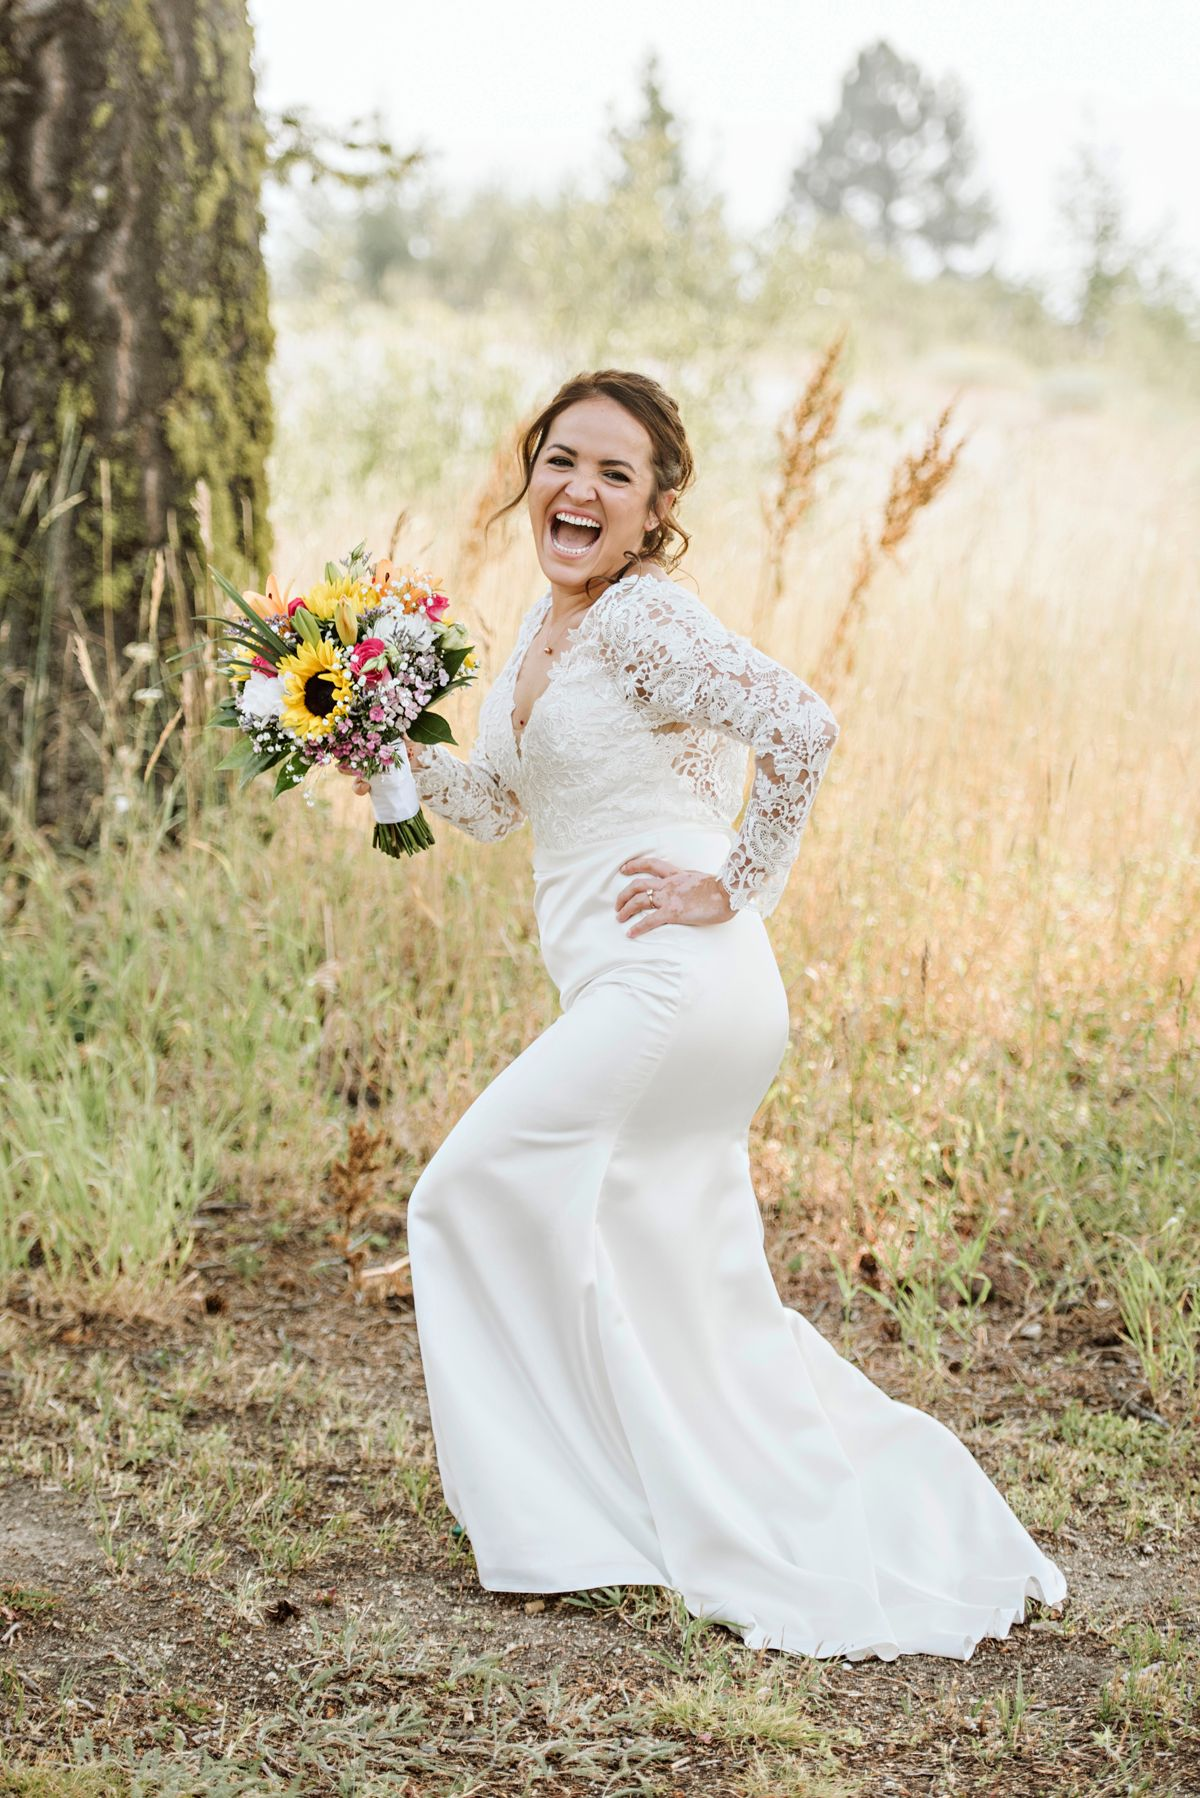 A sassy bride poses and laughs